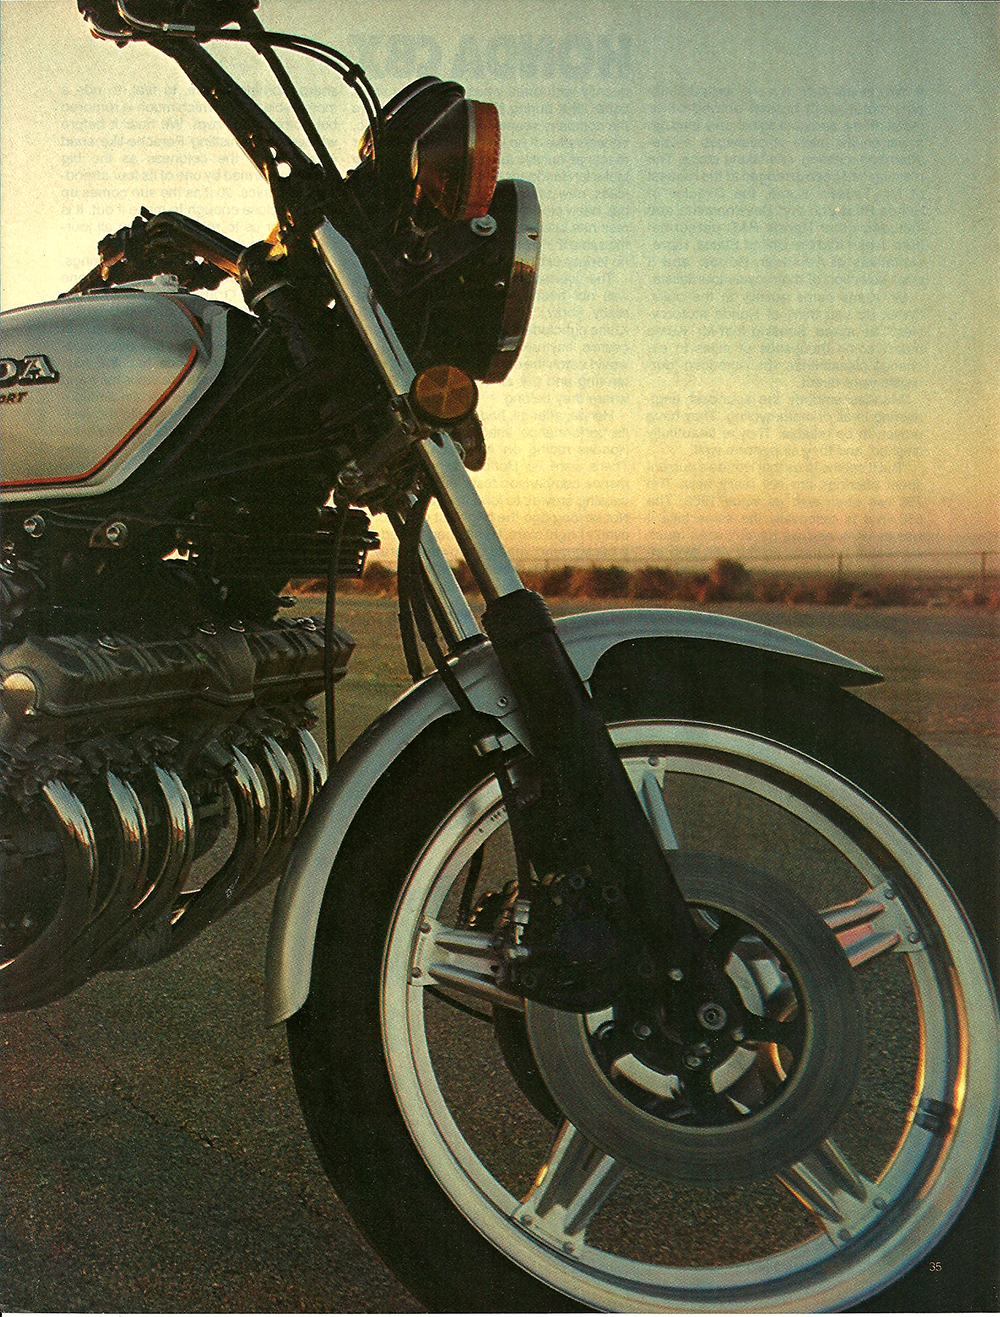 1978 Honda CBX Super Sport road test 02.jpg